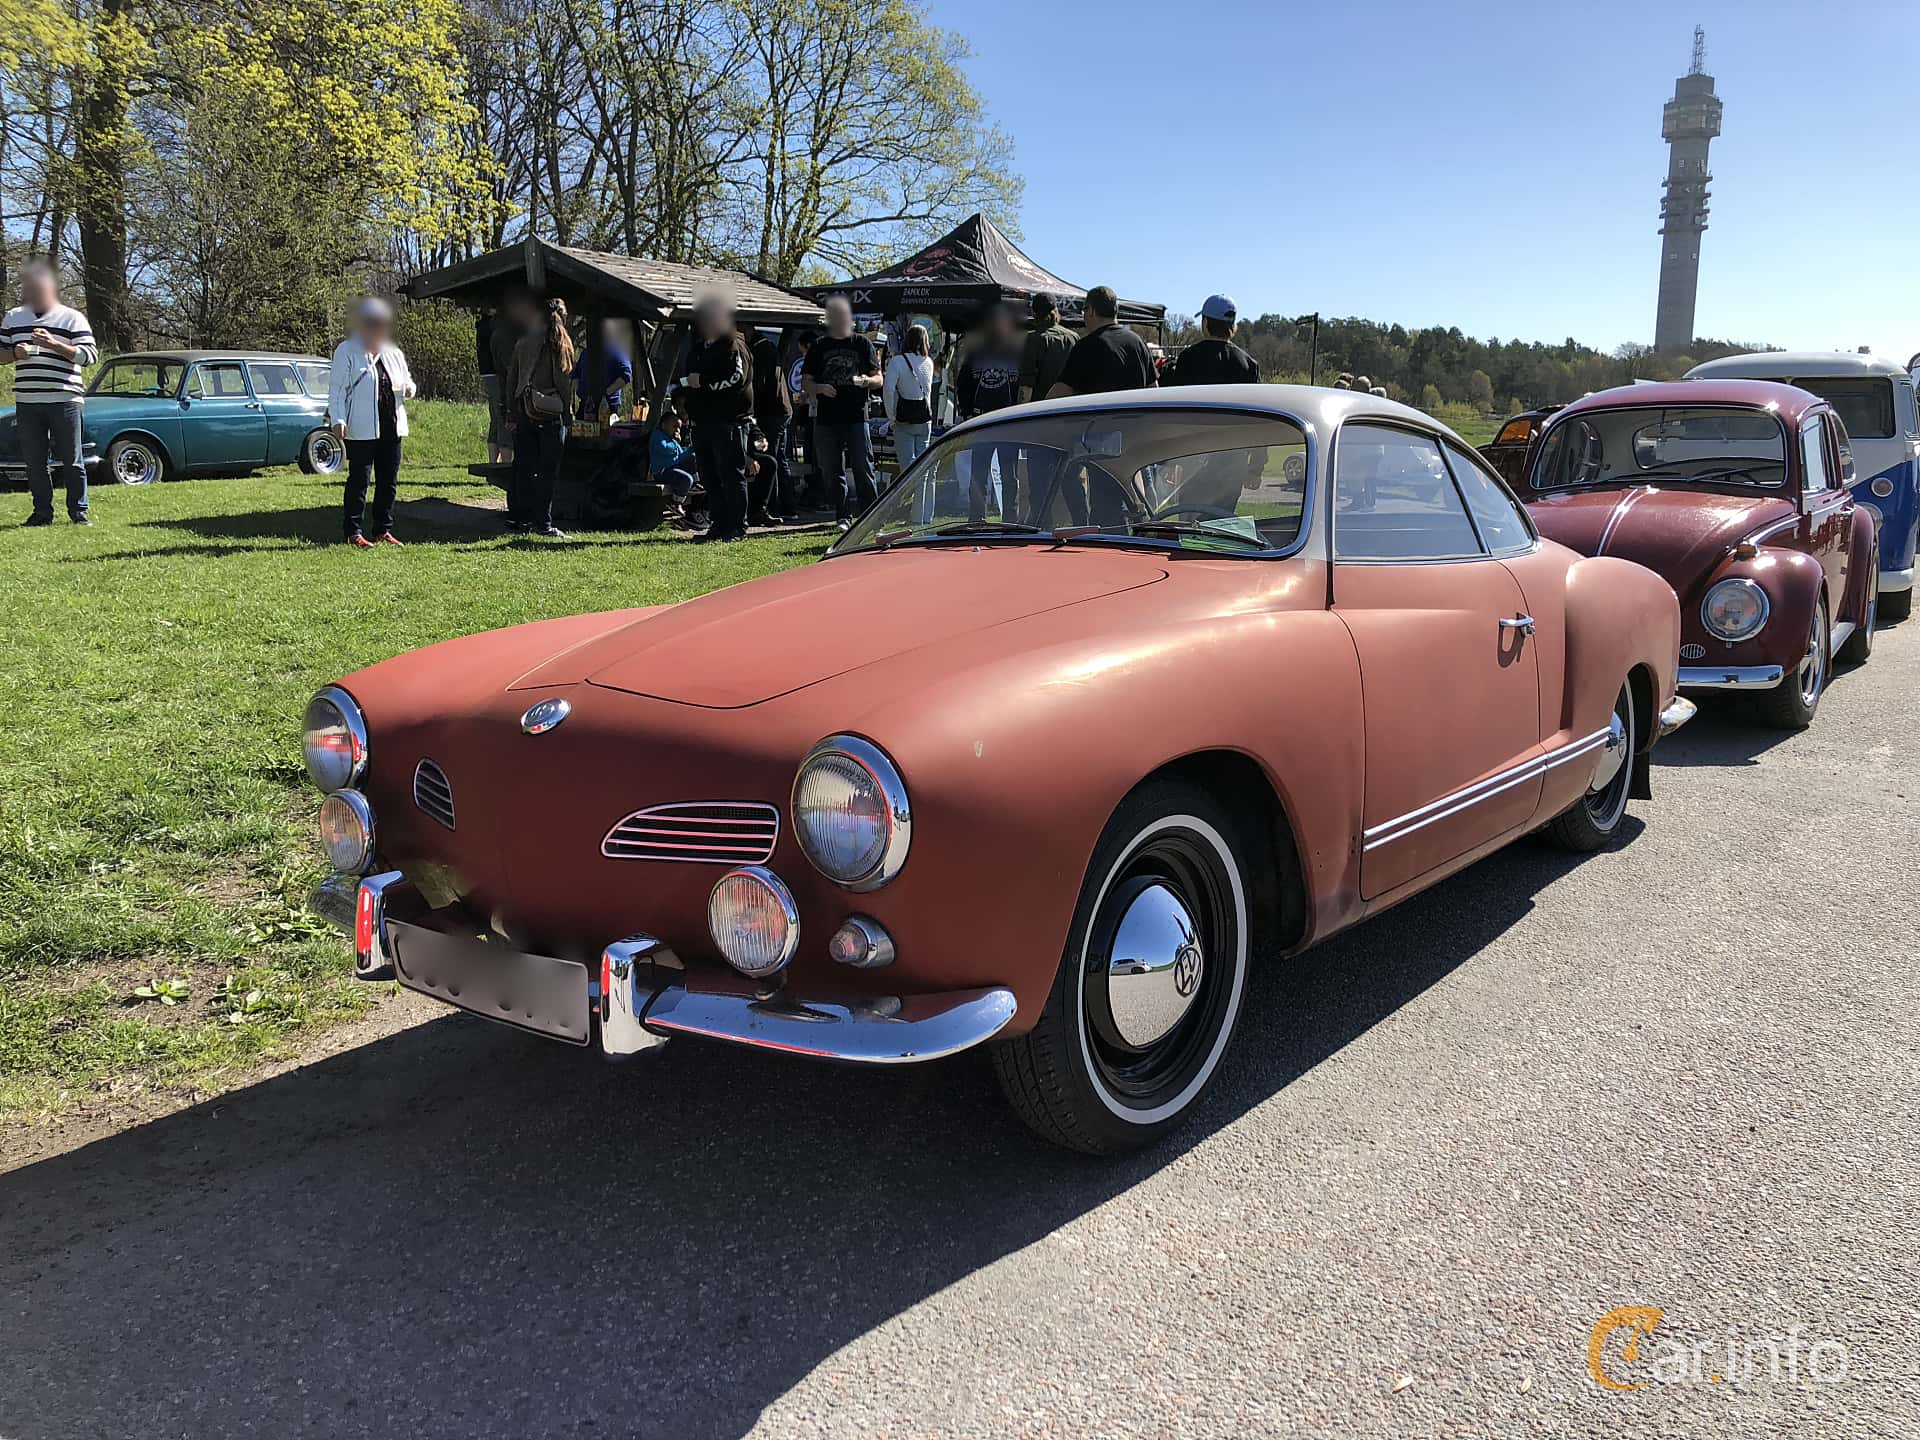 3 Images Of Volkswagen Karmann Ghia 1200 12 Manual 30hp 1960 By Front Side 30ps At